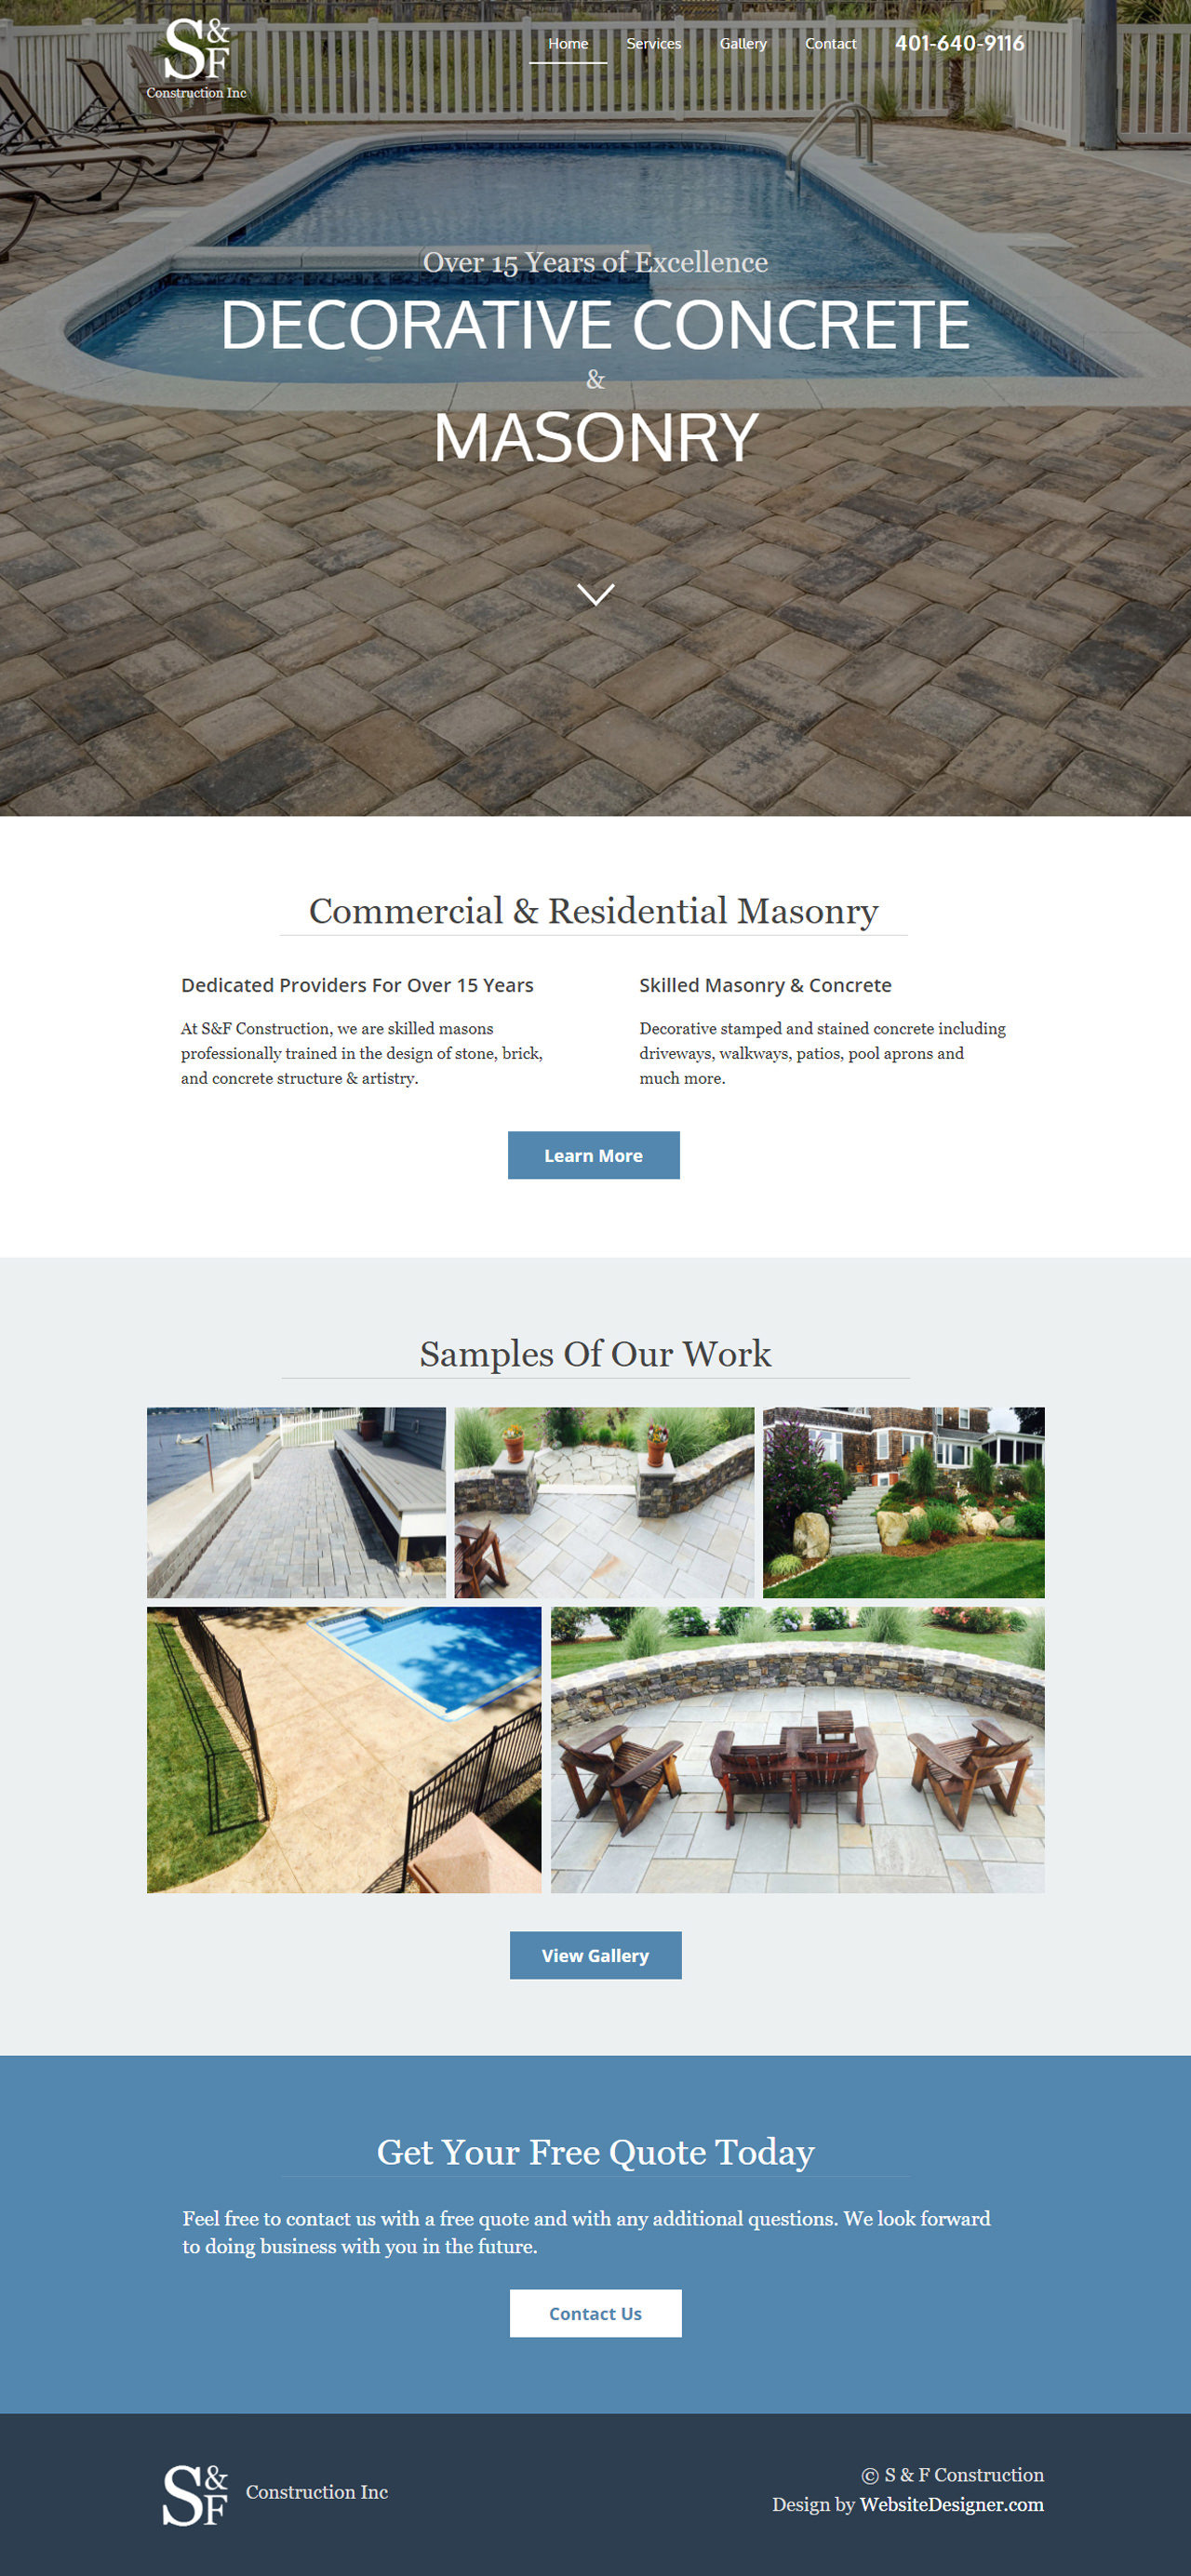 S&F Construction Inc. Home Page